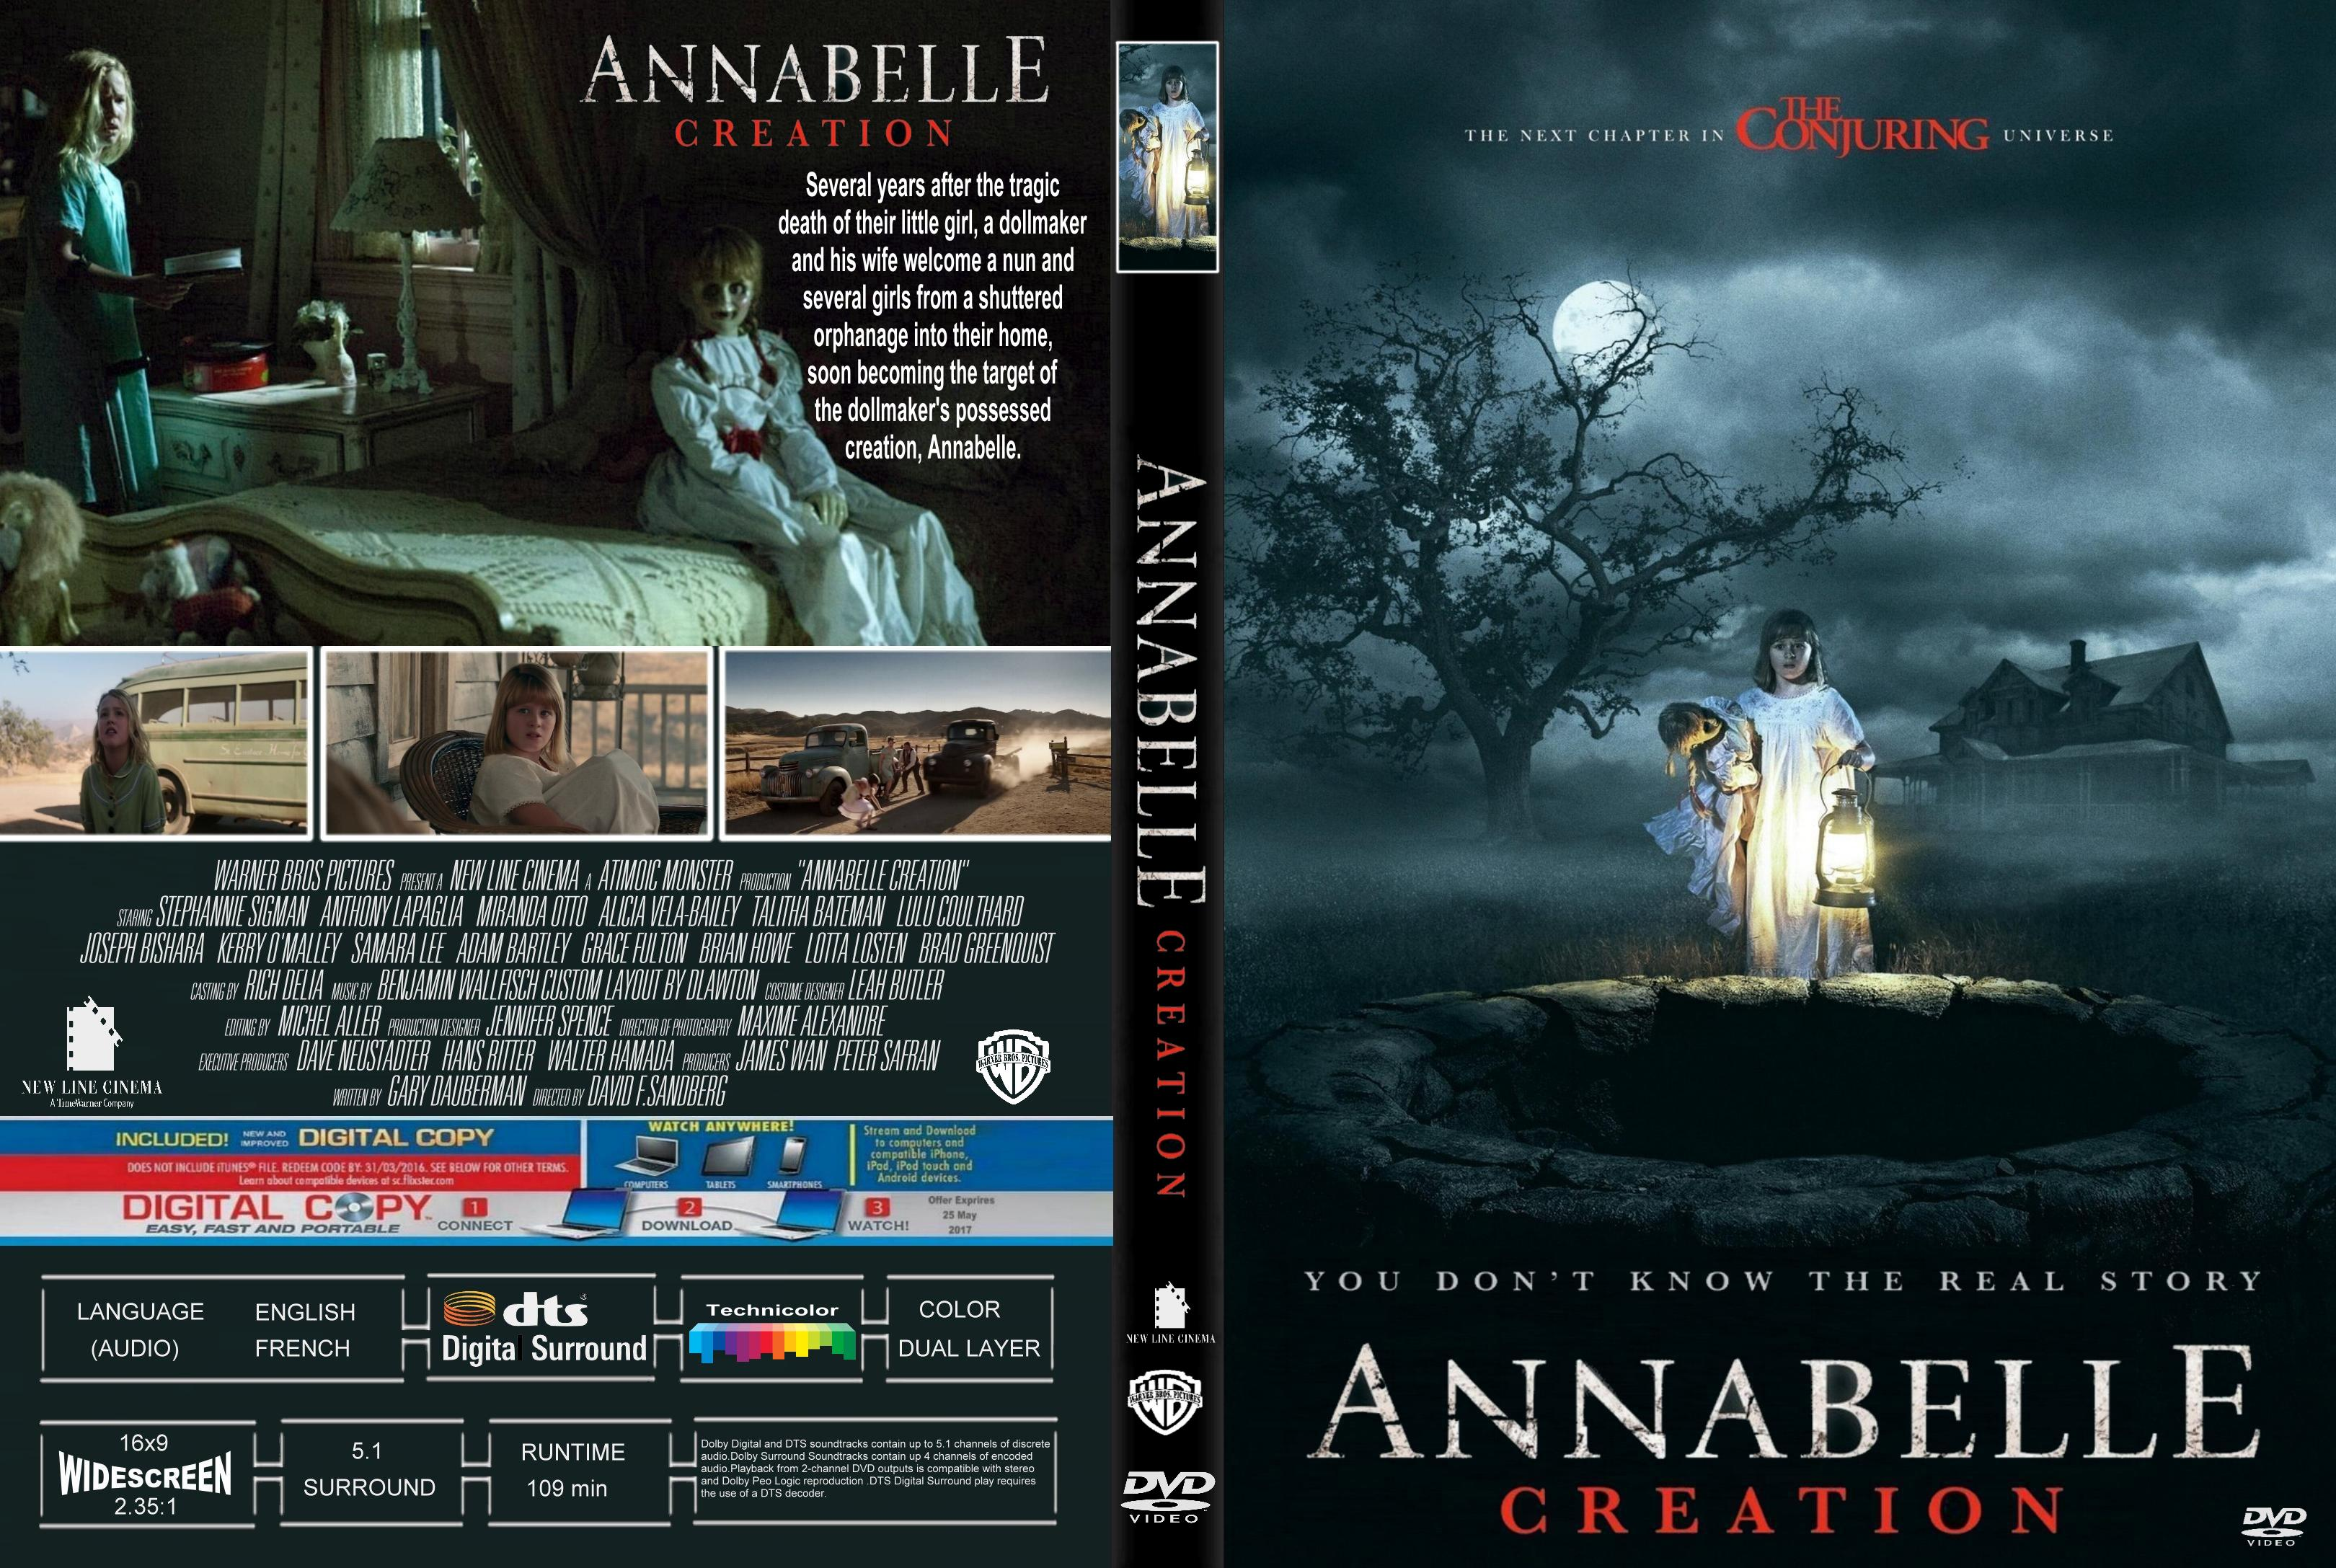 Annabelle Creation 2017 Front Dvd Covers Cover Century Over 500 000 Album Art Covers For Free